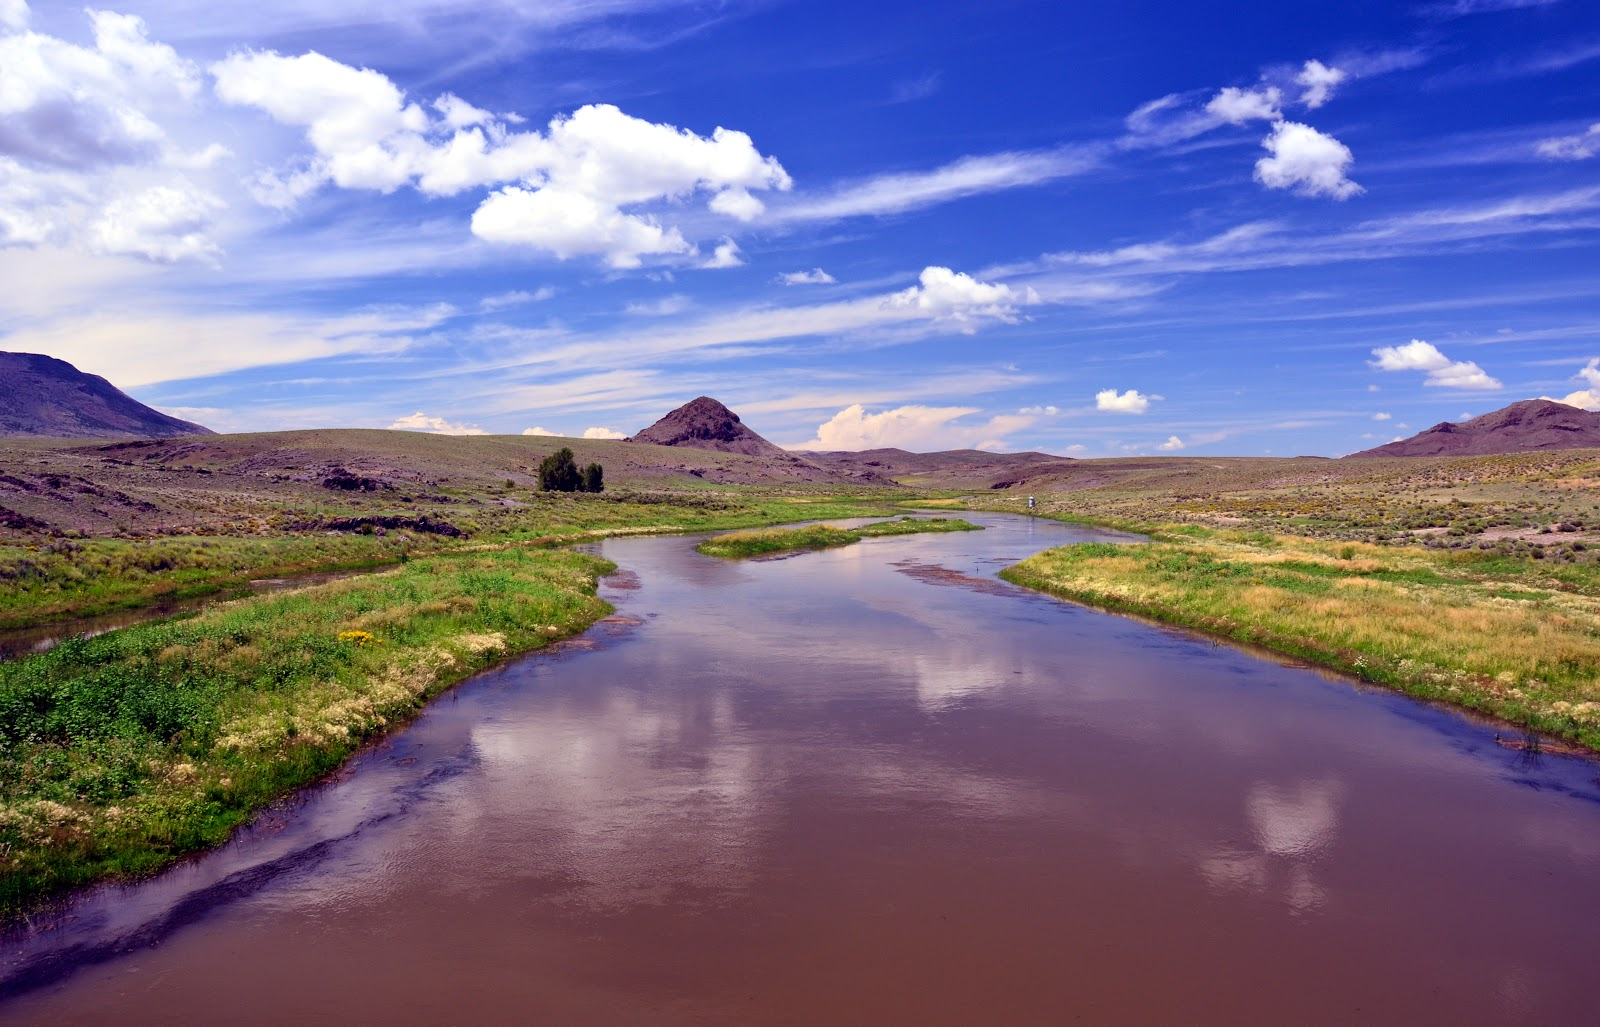 Staycation Guide to the Rio Grande Valley | Trendsetters ... |Rio Grande Valley Cars